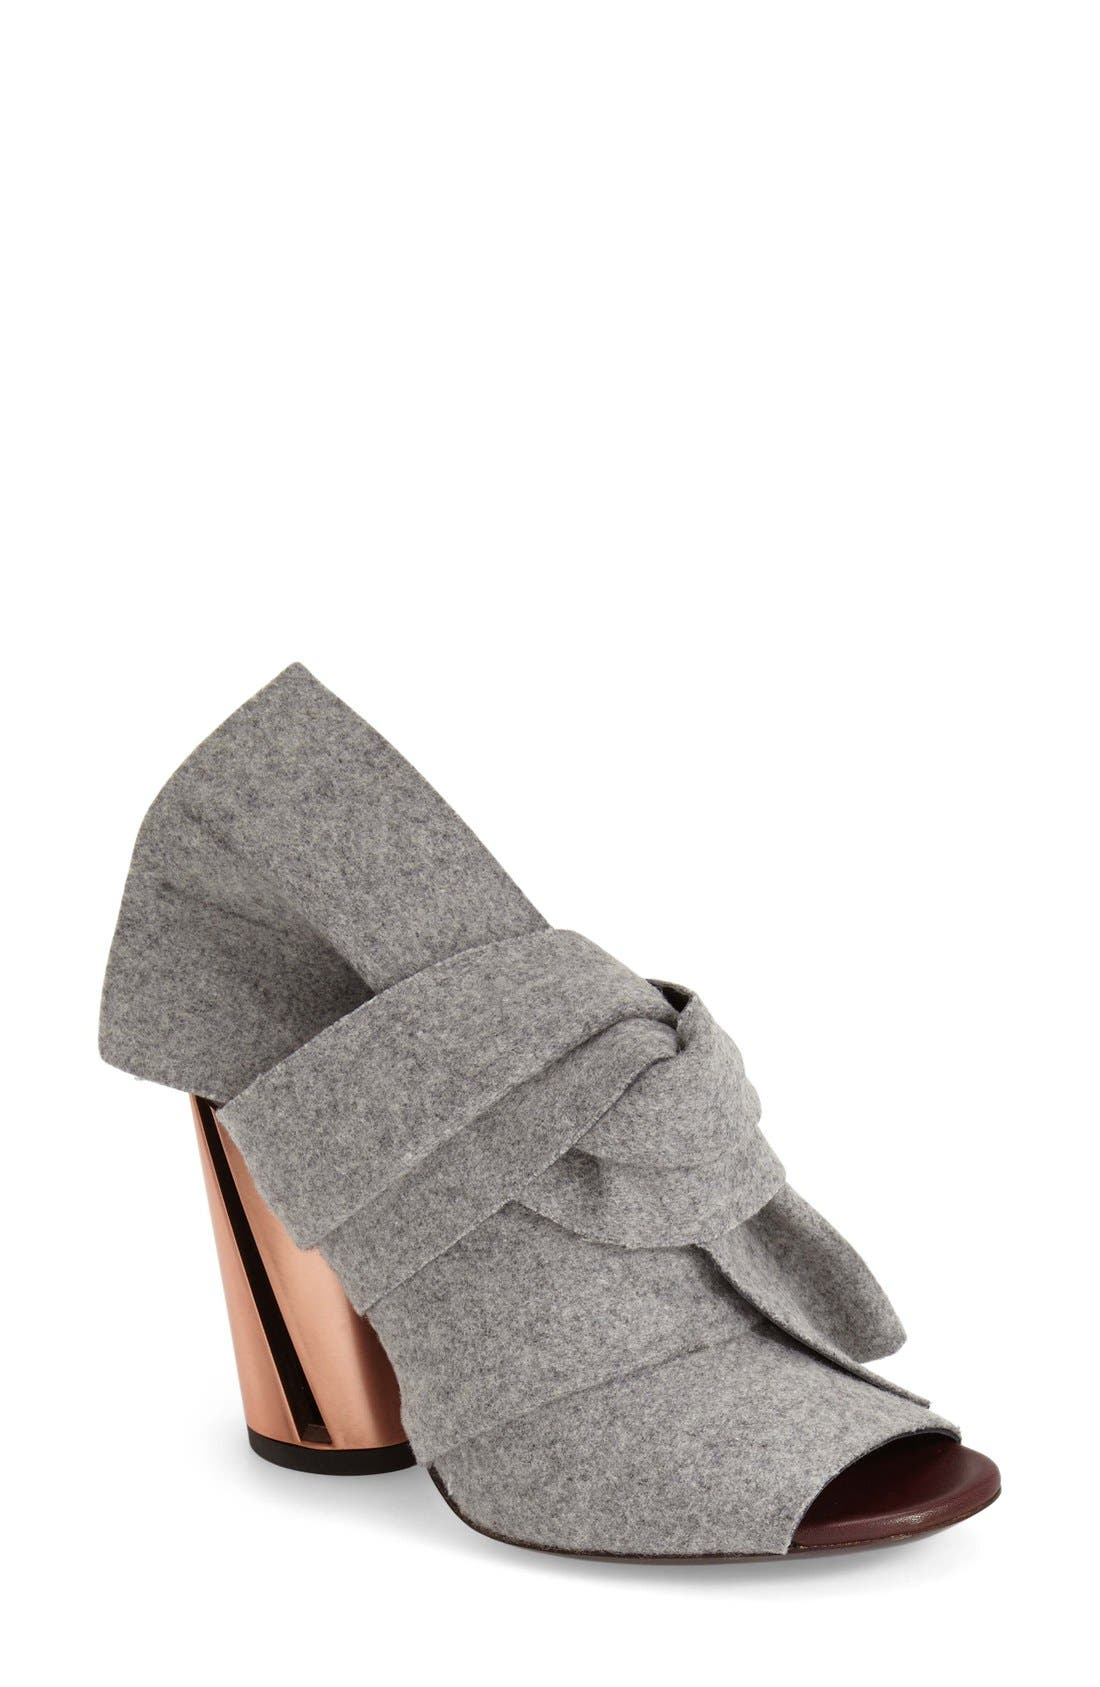 Alternate Image 1 Selected - Proenza Schouler Knotted Peep Toe Bootie (Women)